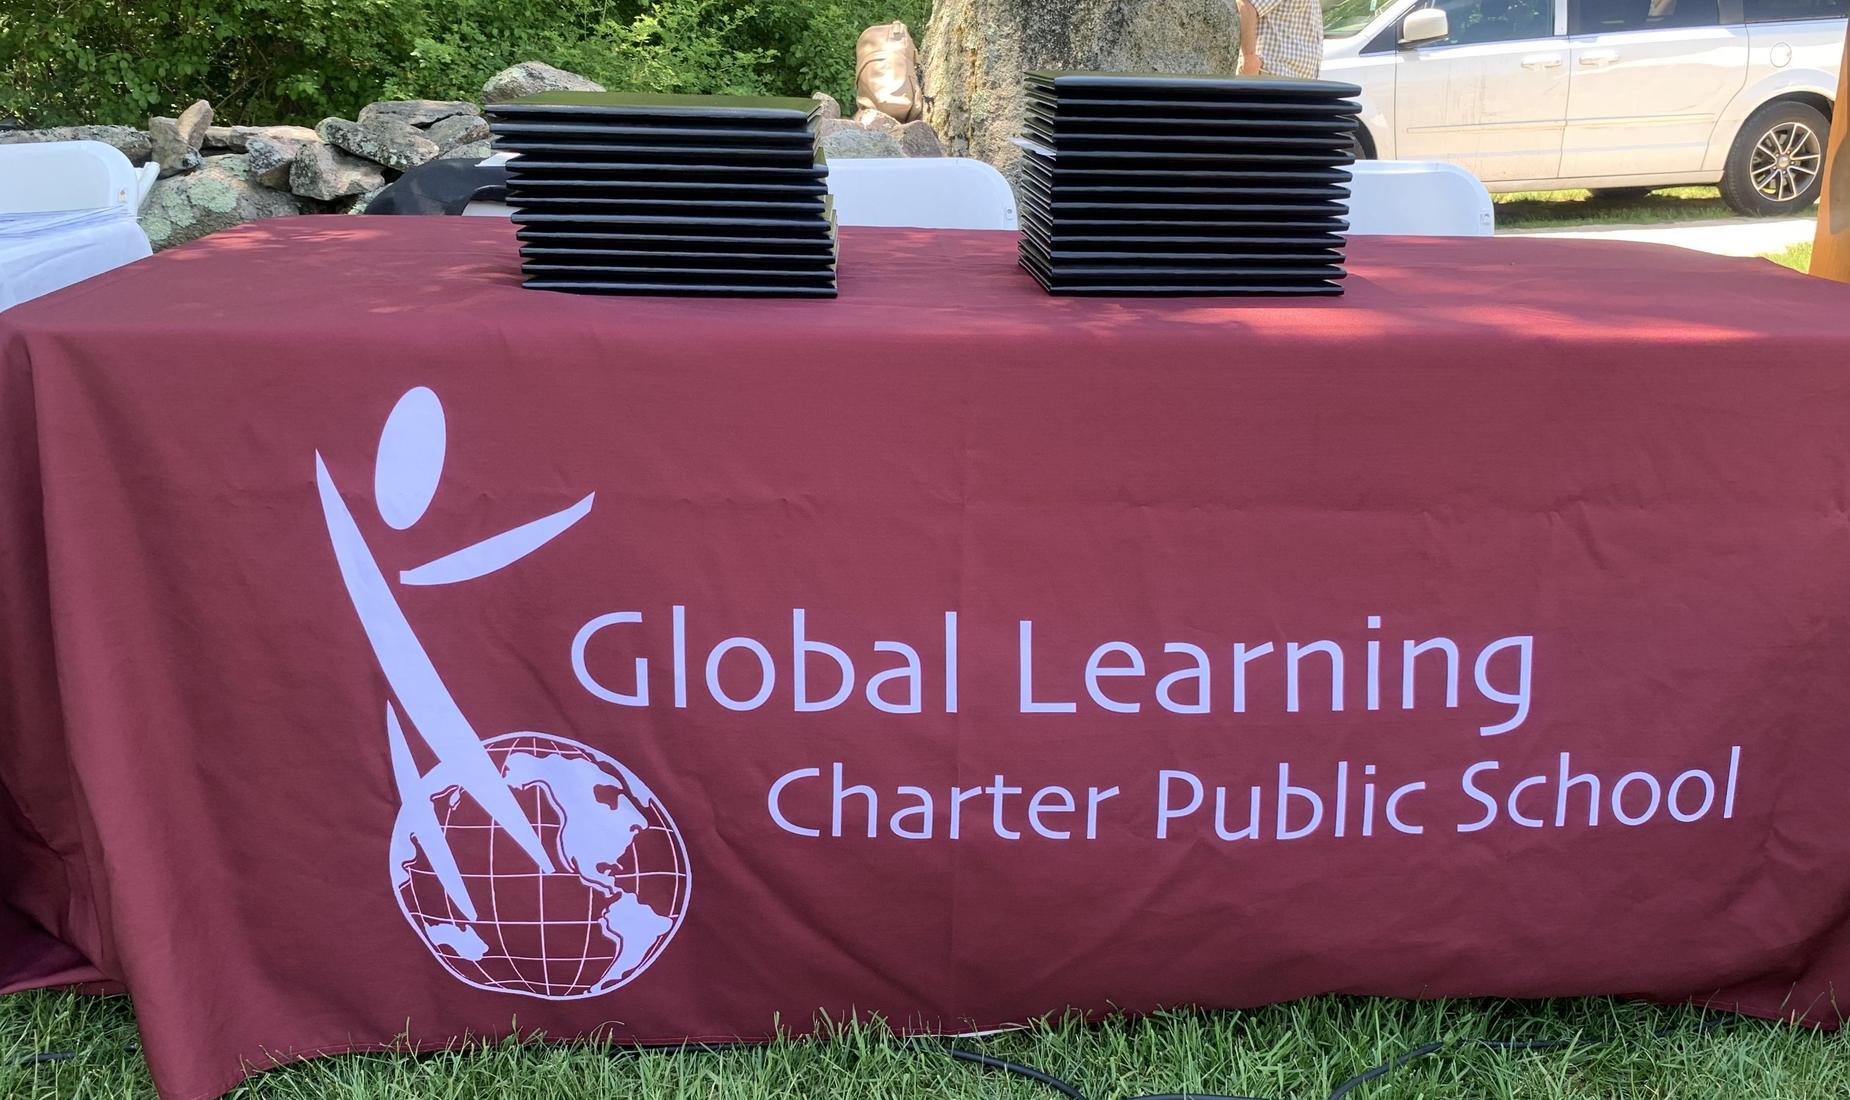 GLCPS tablecloth with logo and diplomas